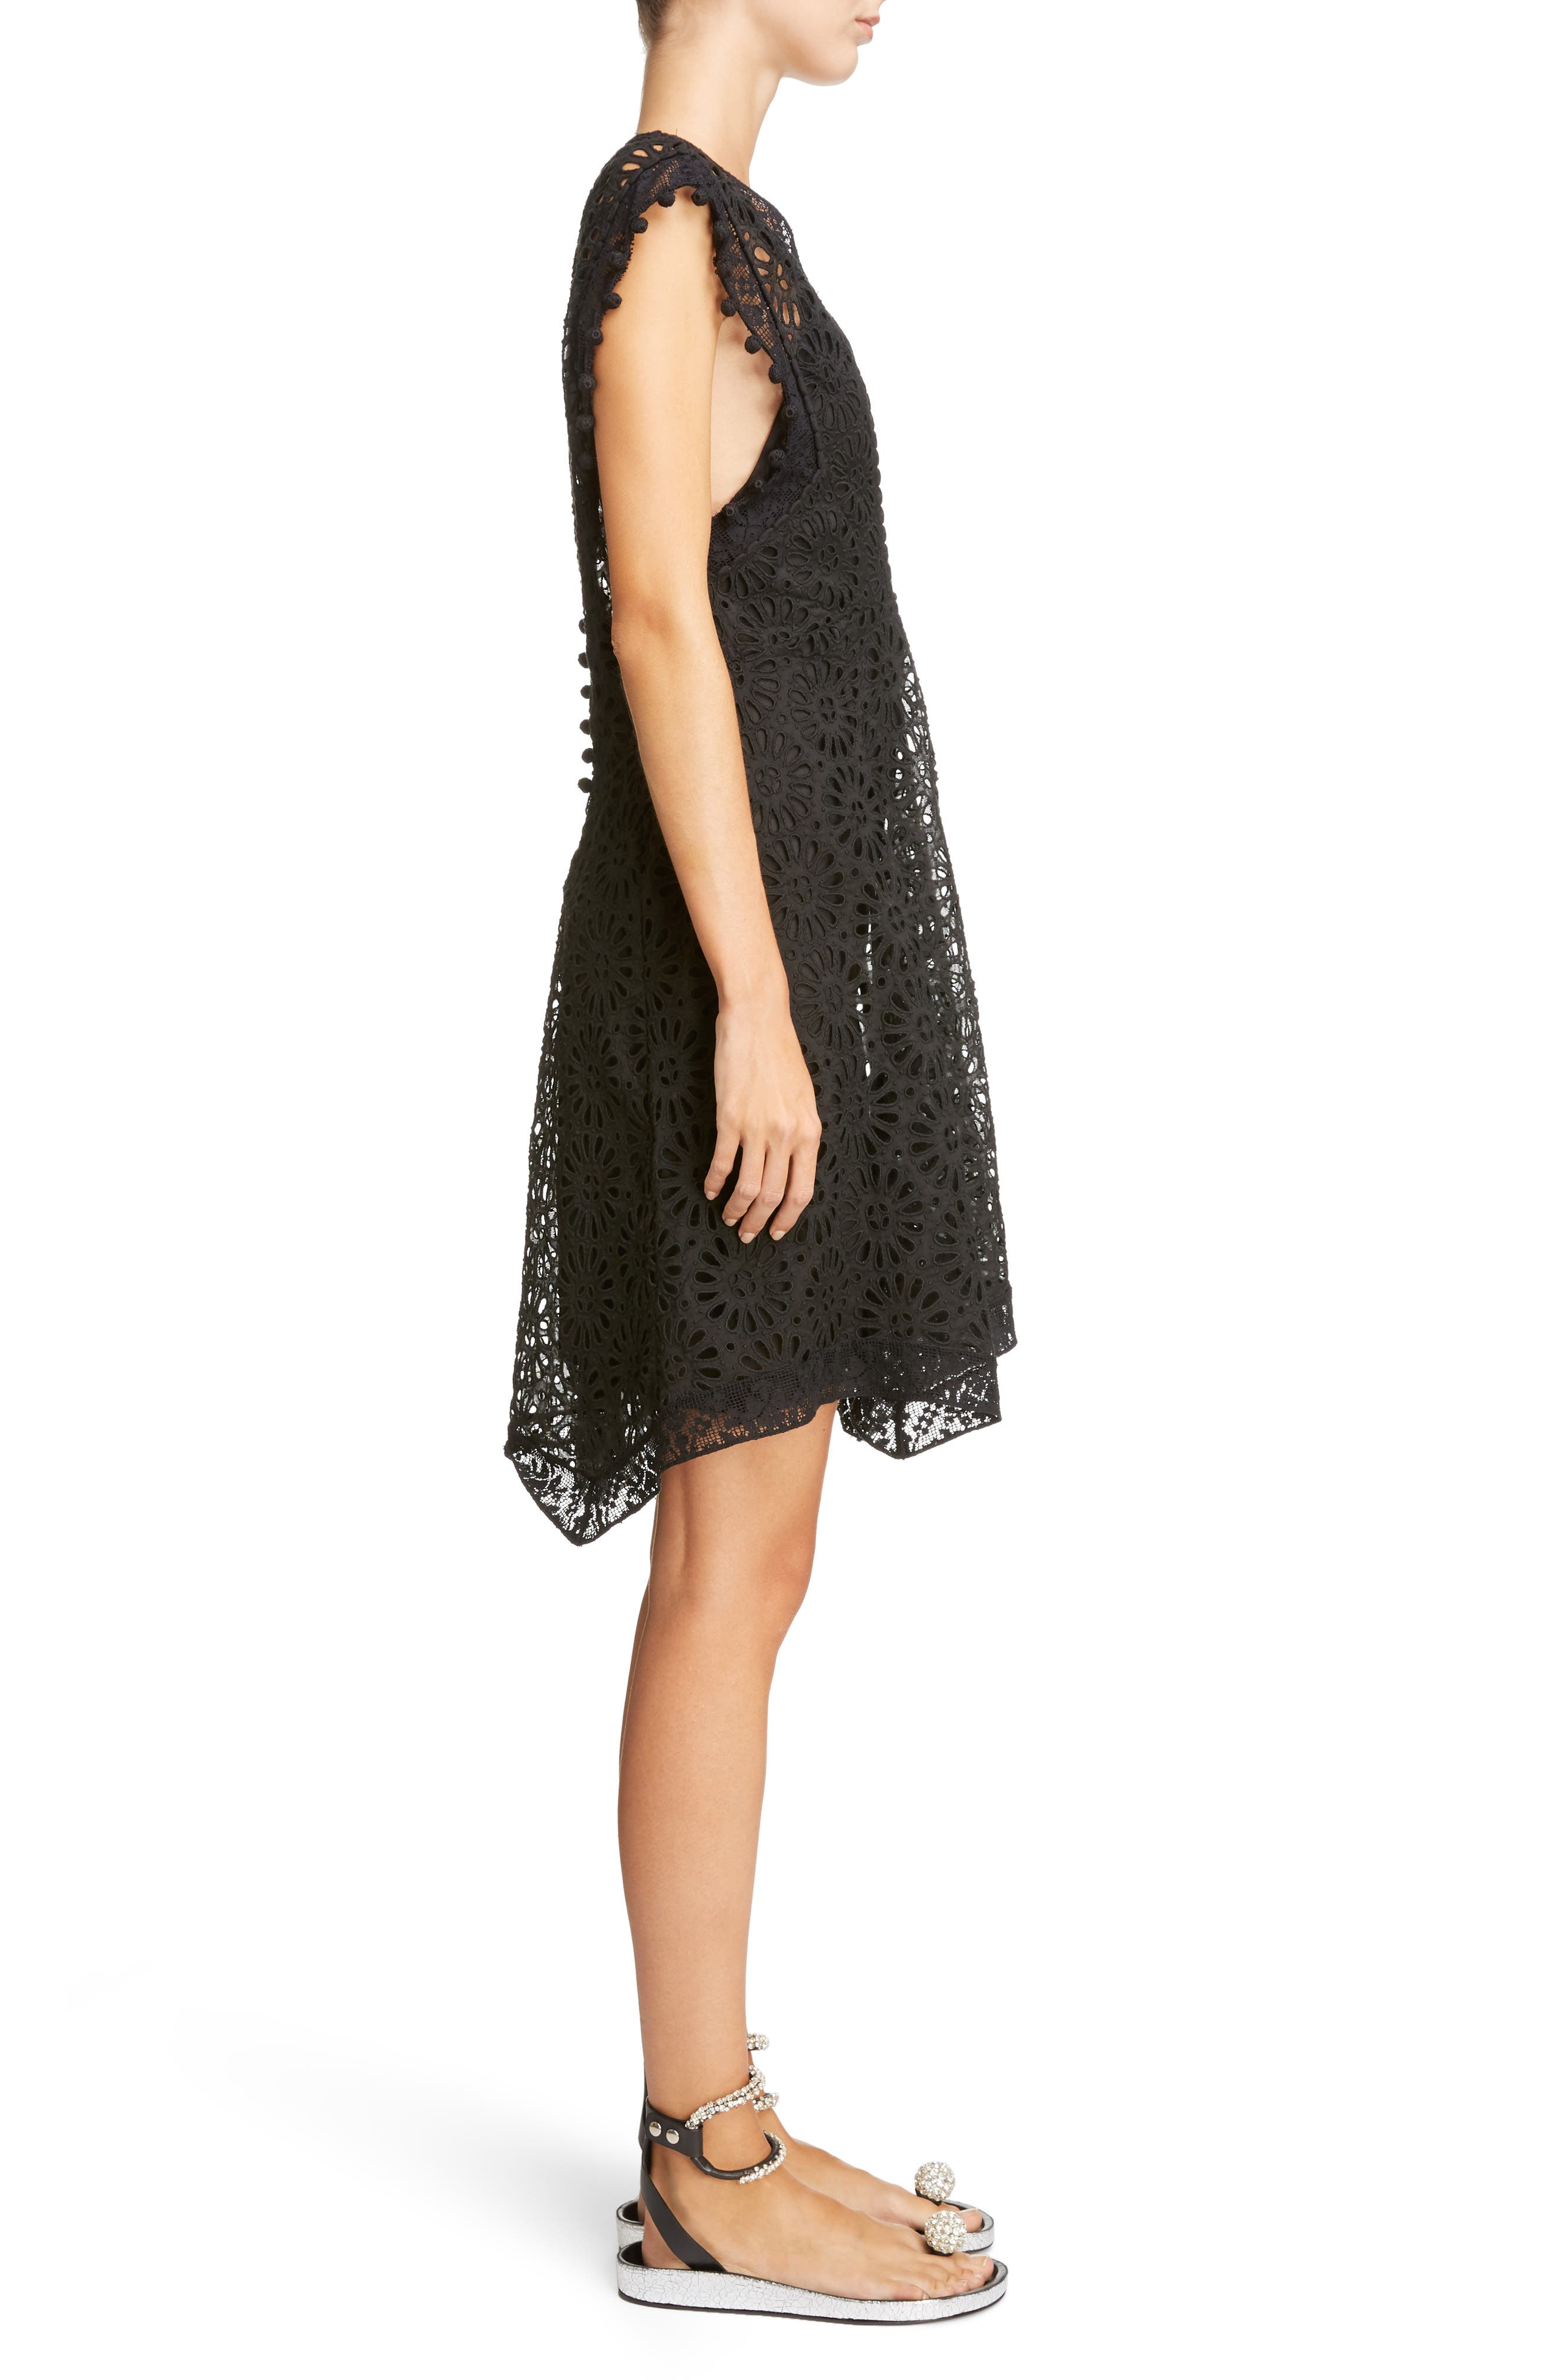 Pompom Trim Broderie Anglaise Dress,                             Alternate thumbnail 3, color,                             Black